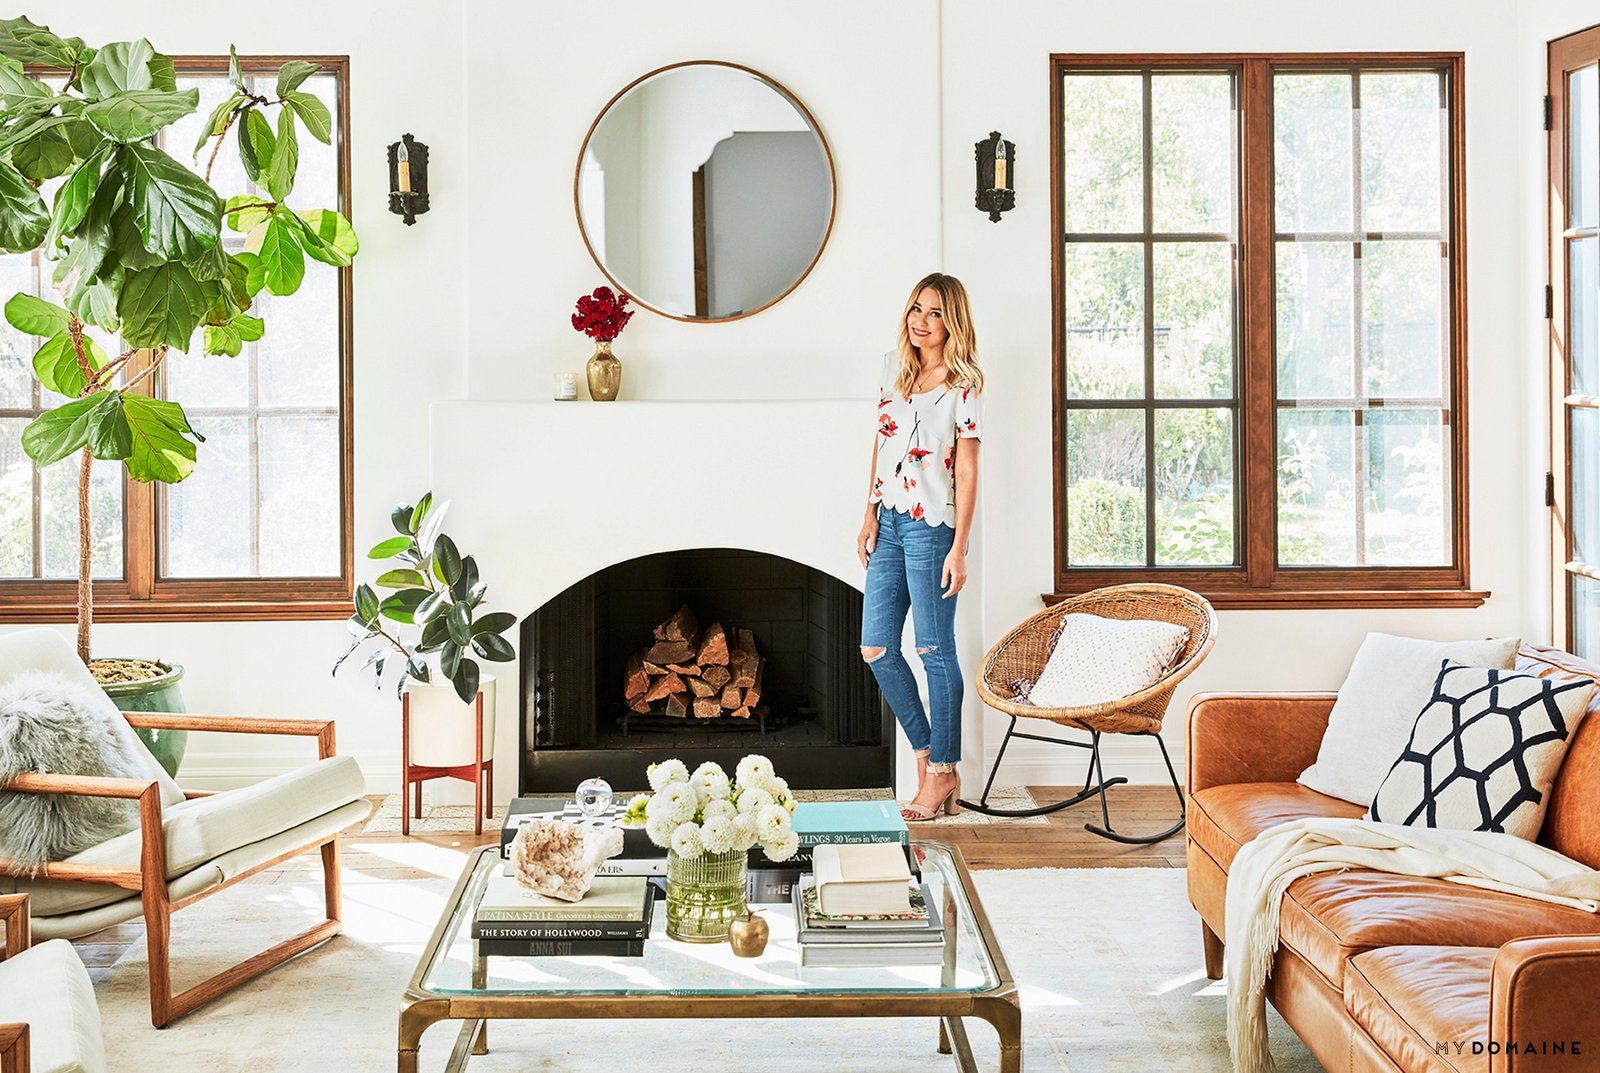 Photo 8 of 24 in Tour Lauren Conrad's Elegant, Light-Filled Home in the Pacific Palisades